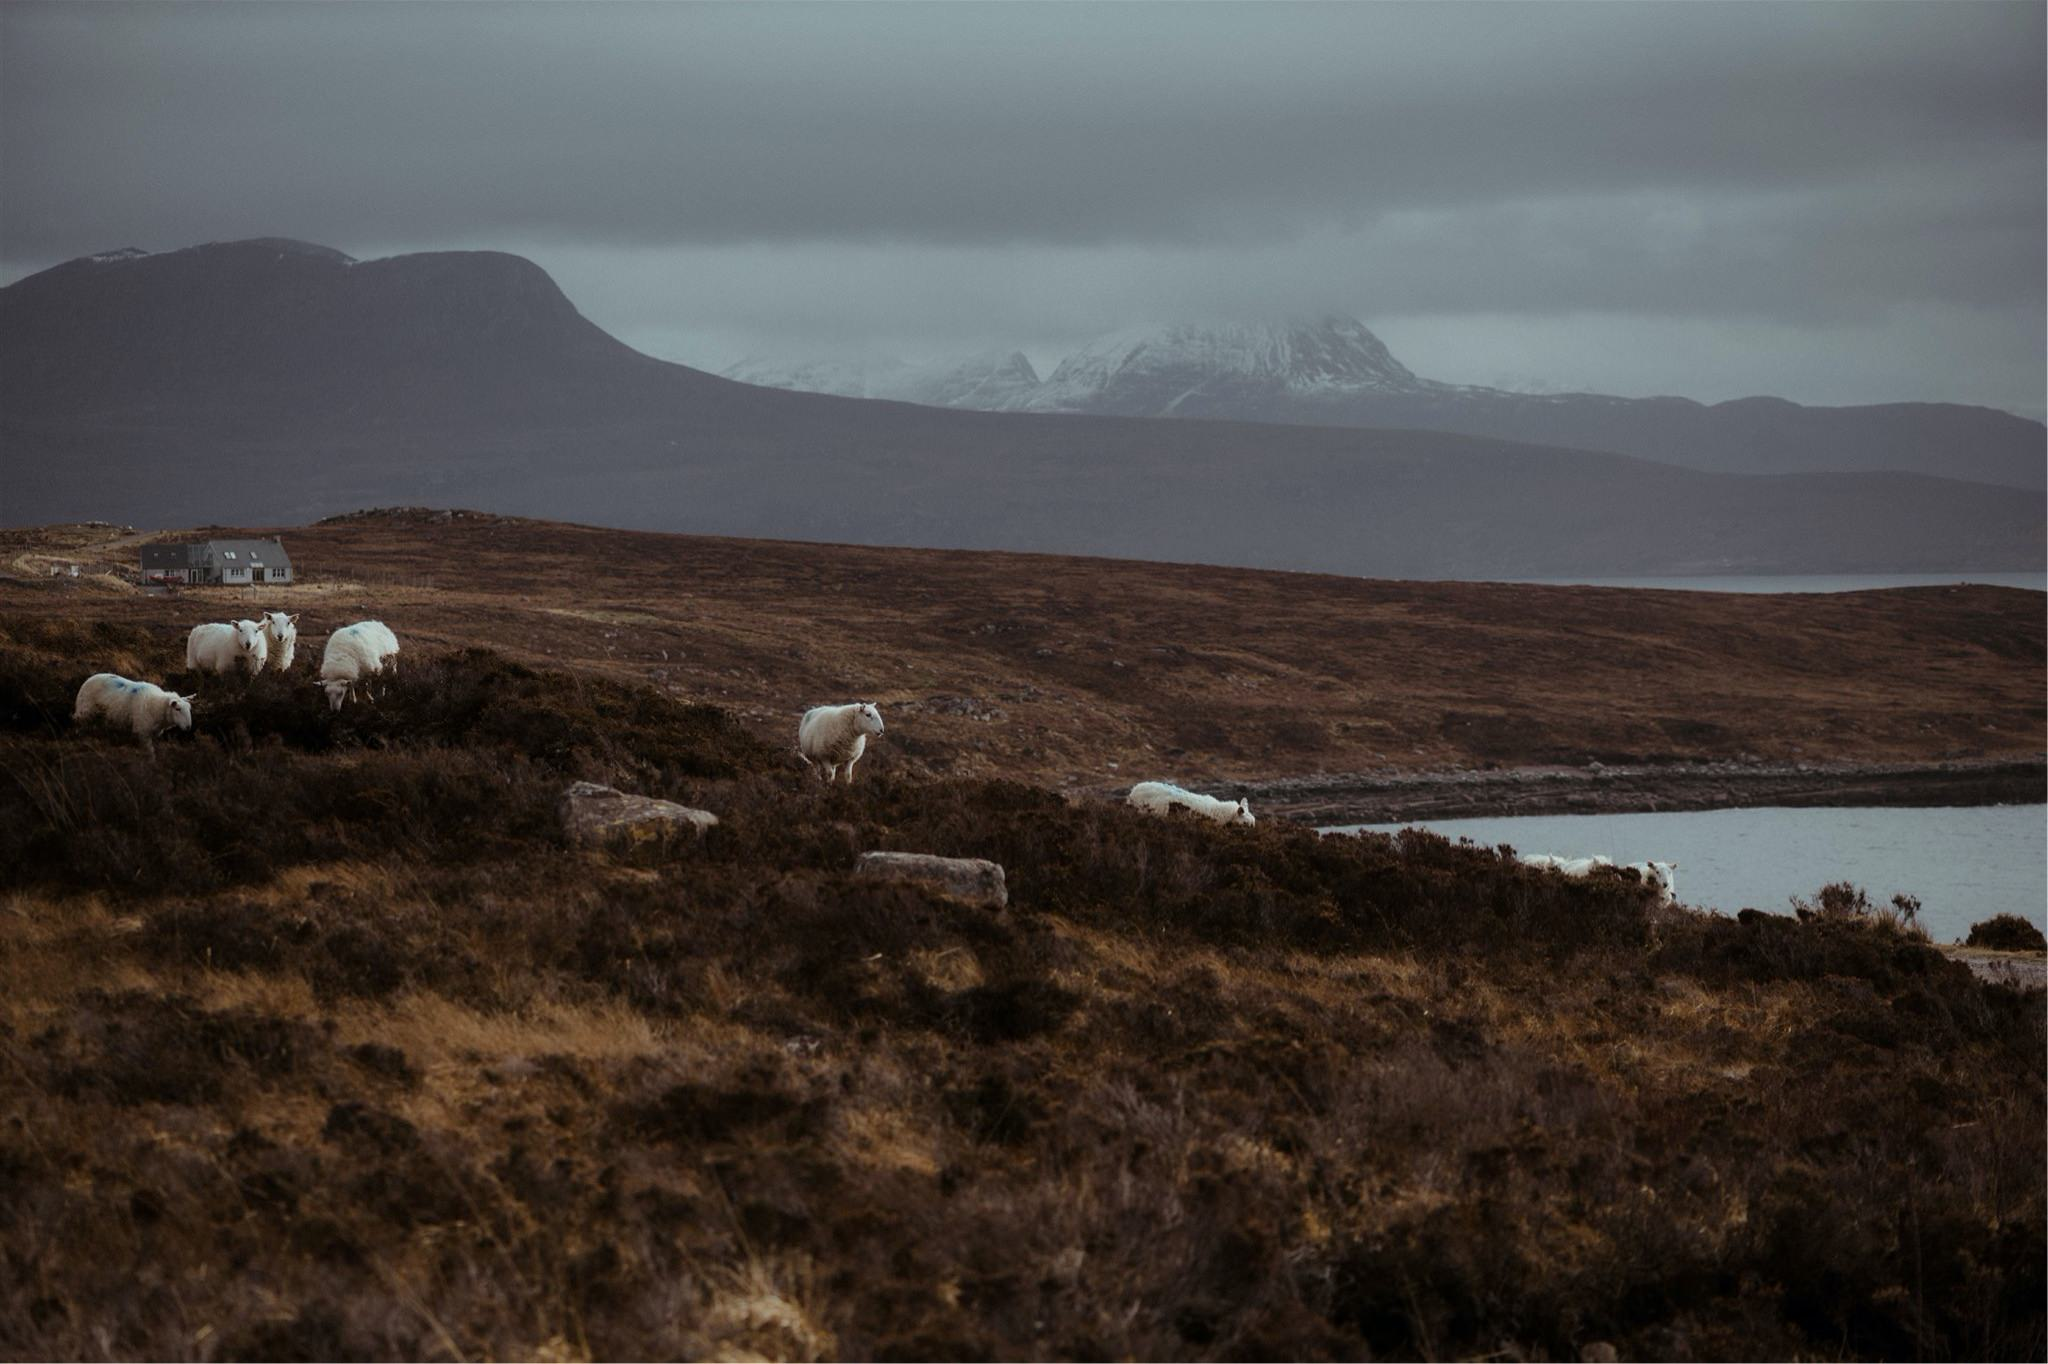 Mountain view with sheep and cottage in Assynt, Scotland